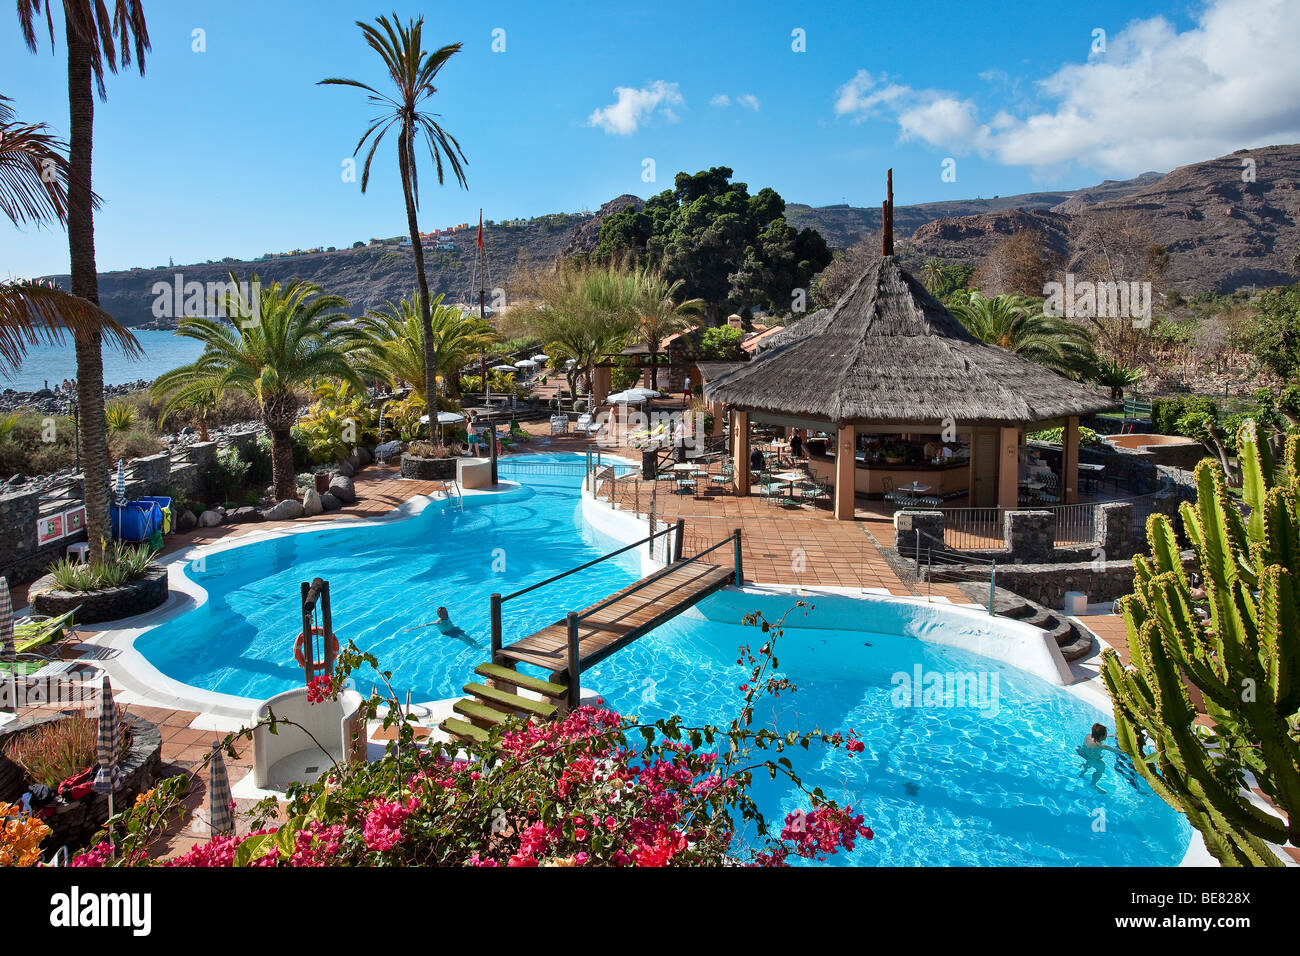 View Over The Swimming Pool Of Jardin Tecina Hotel In The Sunlight